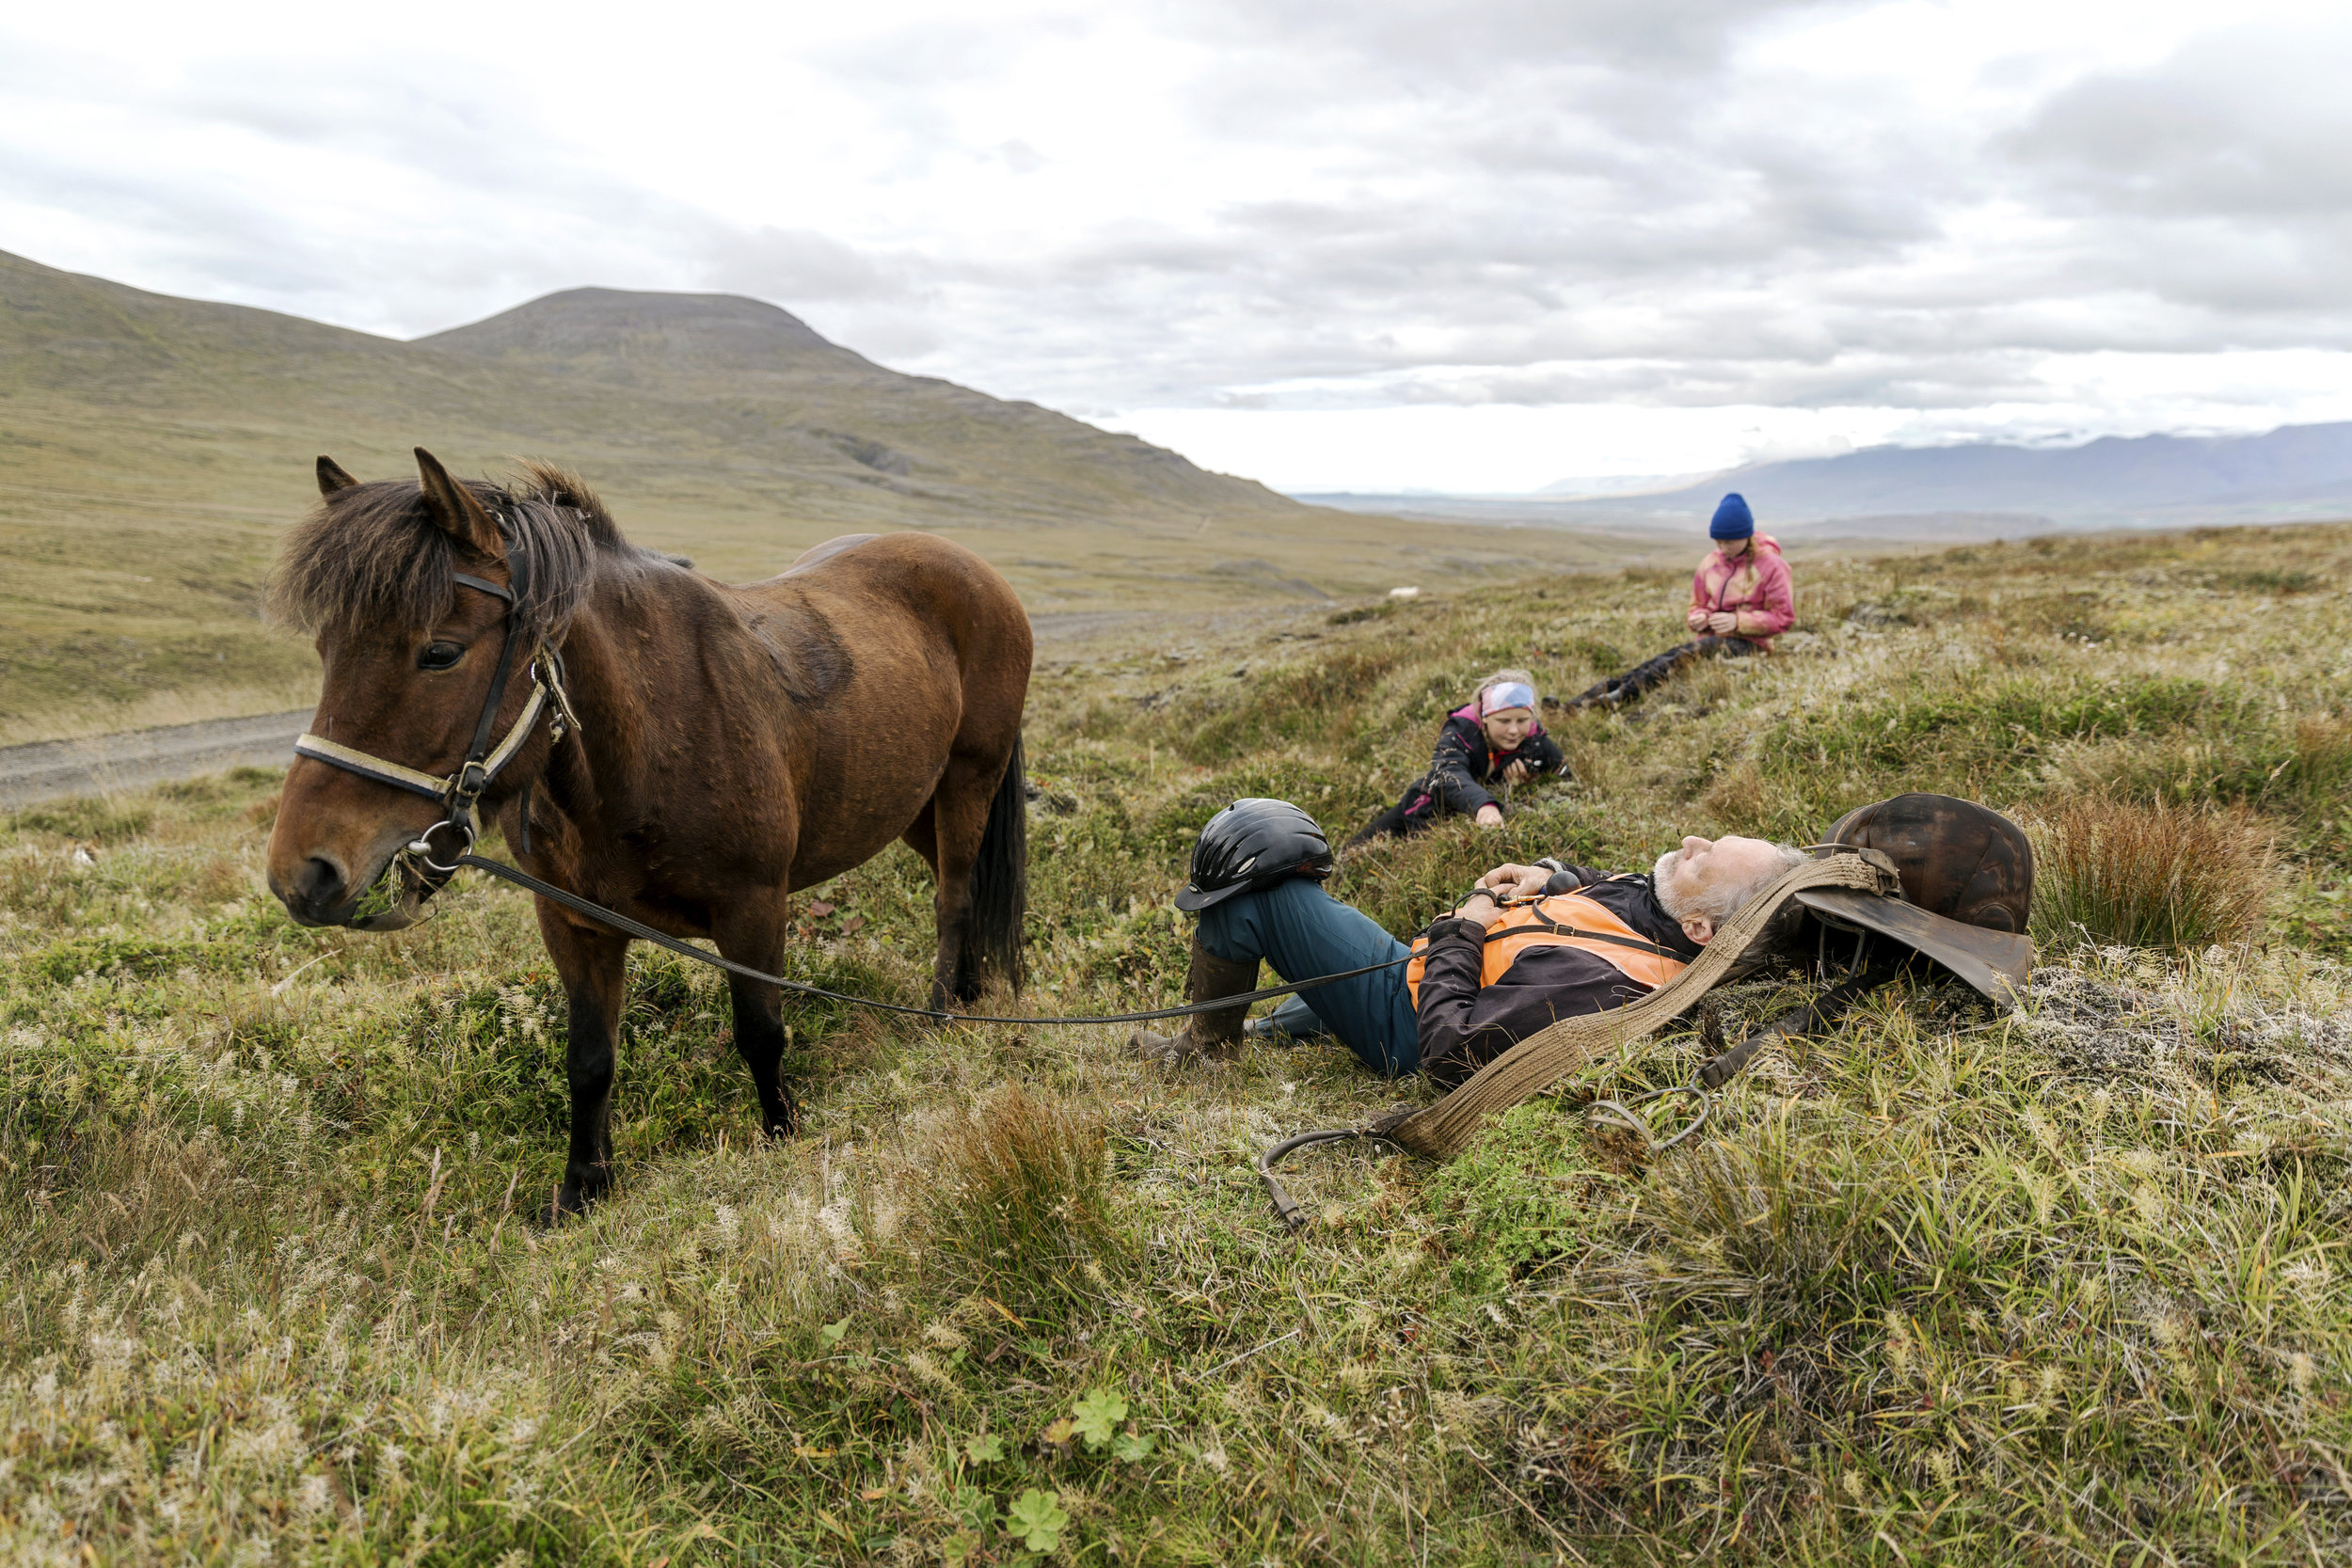 Iceland, Valley of Mælifellsdalur -September 8th 2017:  The round-ups involve many, many hours on horseback in the high country, so those traveling together decide when it's time to take a break. Here, Guðmundur Óskar Guðmundsson of Akureyri, catches a quick nap, while two local children pick berries.